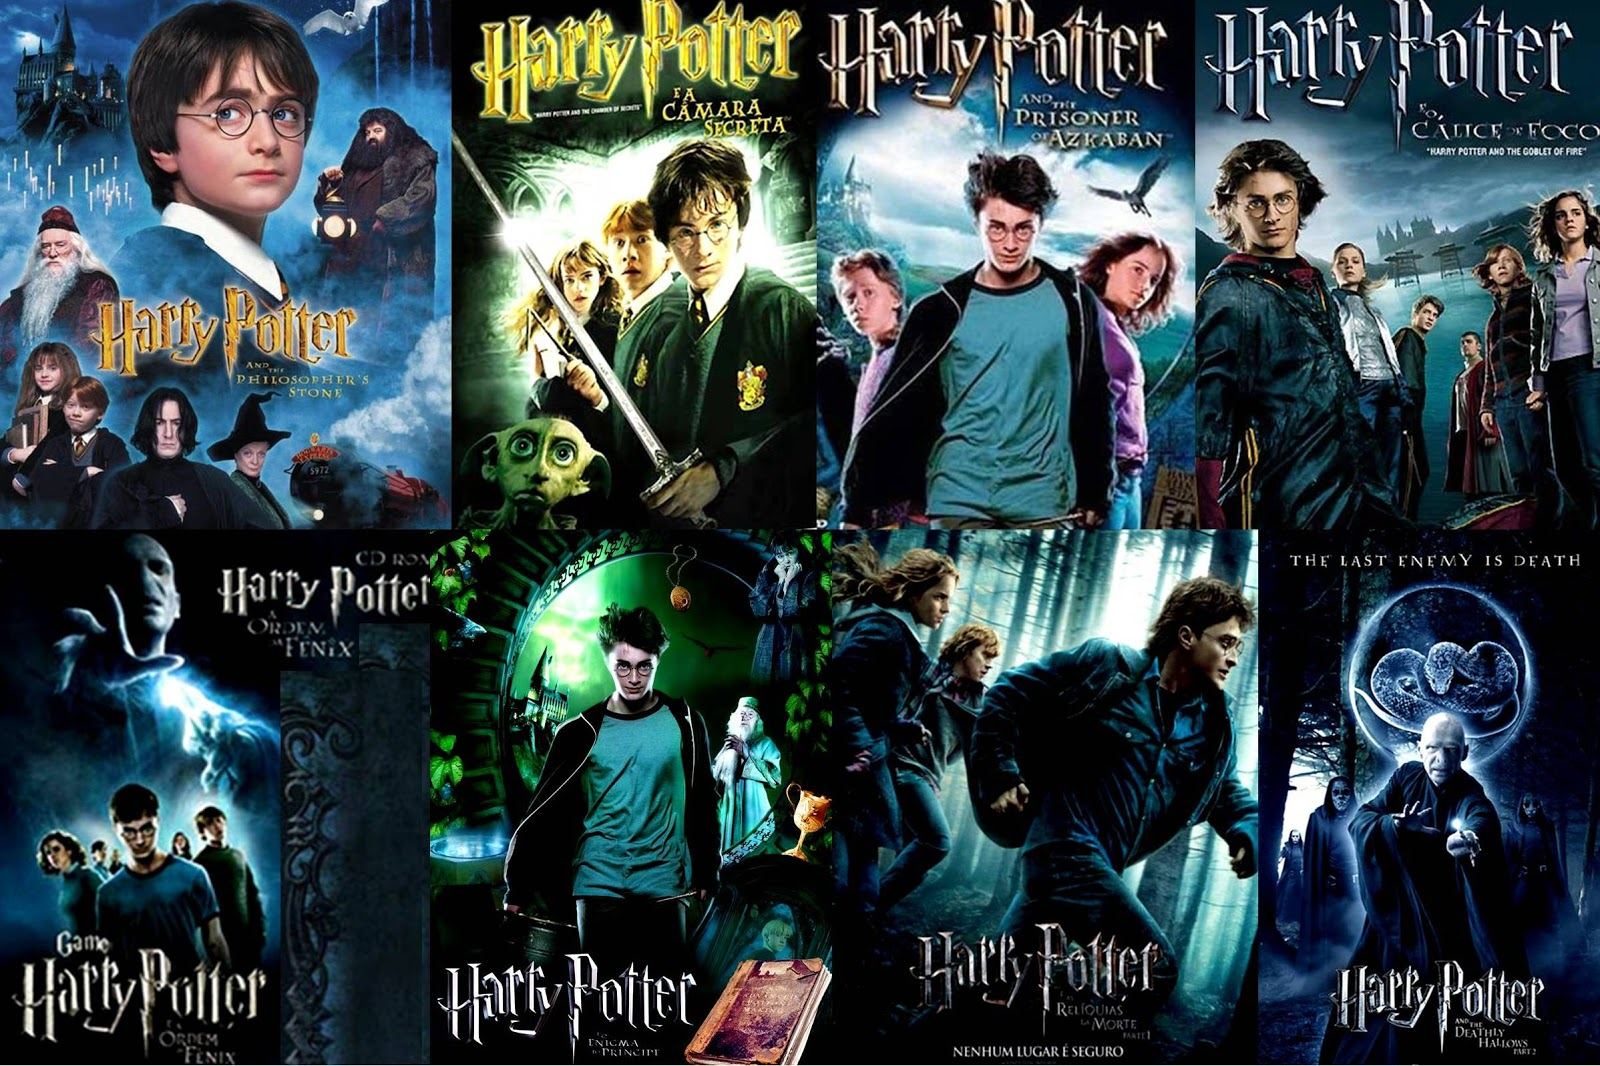 Harry Potter ve Melez Prens Türkçe